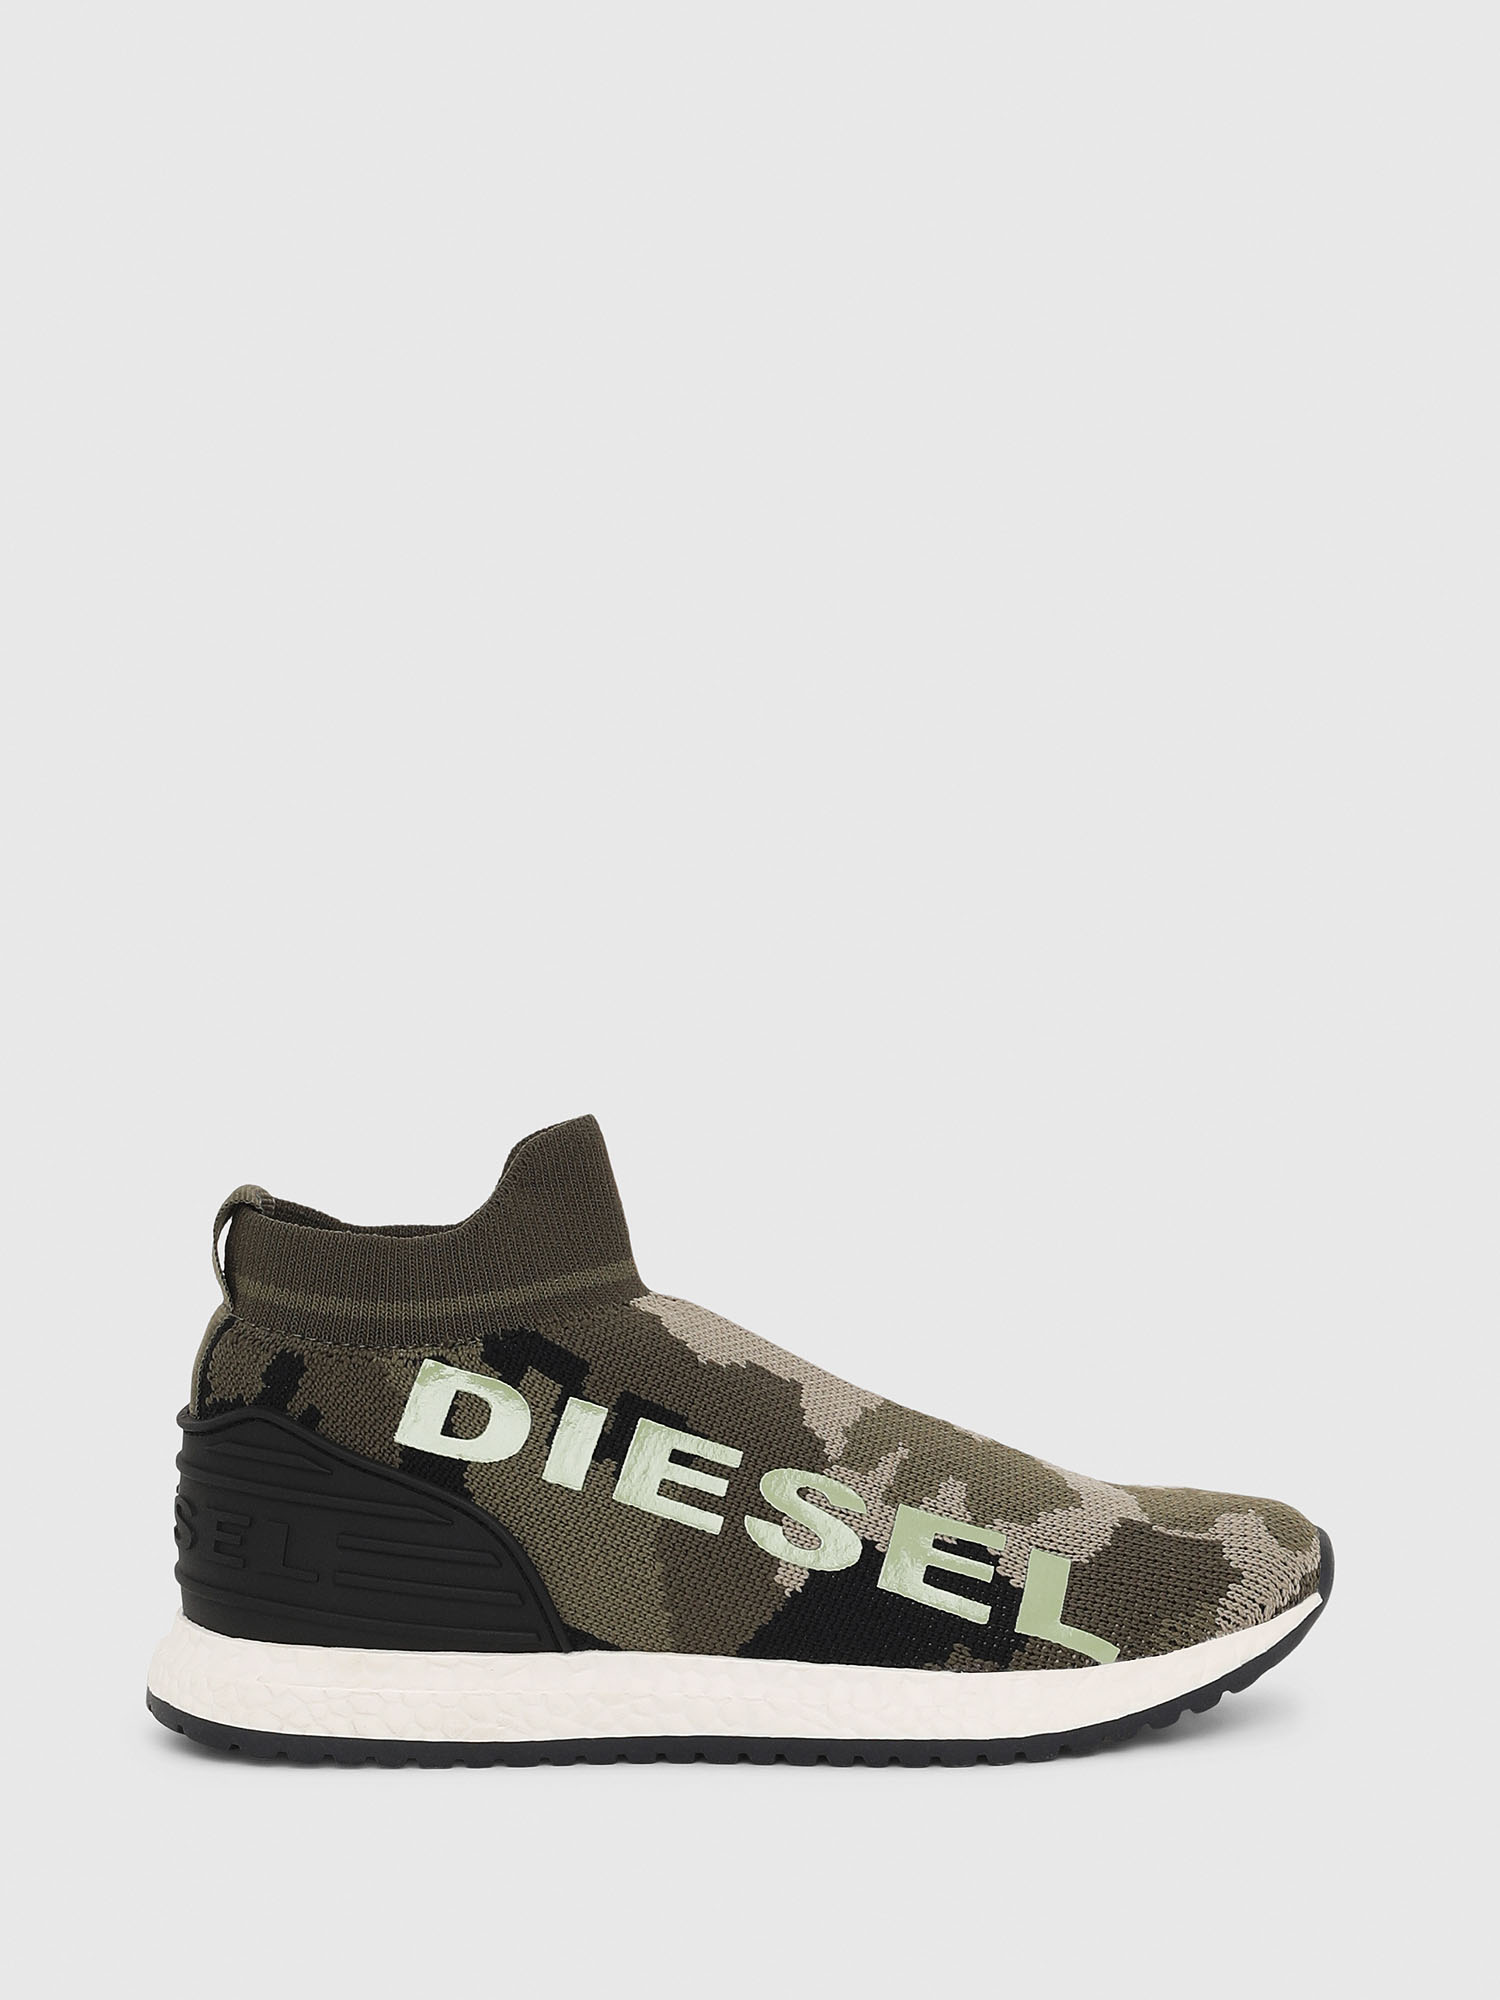 Diesel - SLIP ON 03 LOW SOCK,  - Scarpe - Image 1